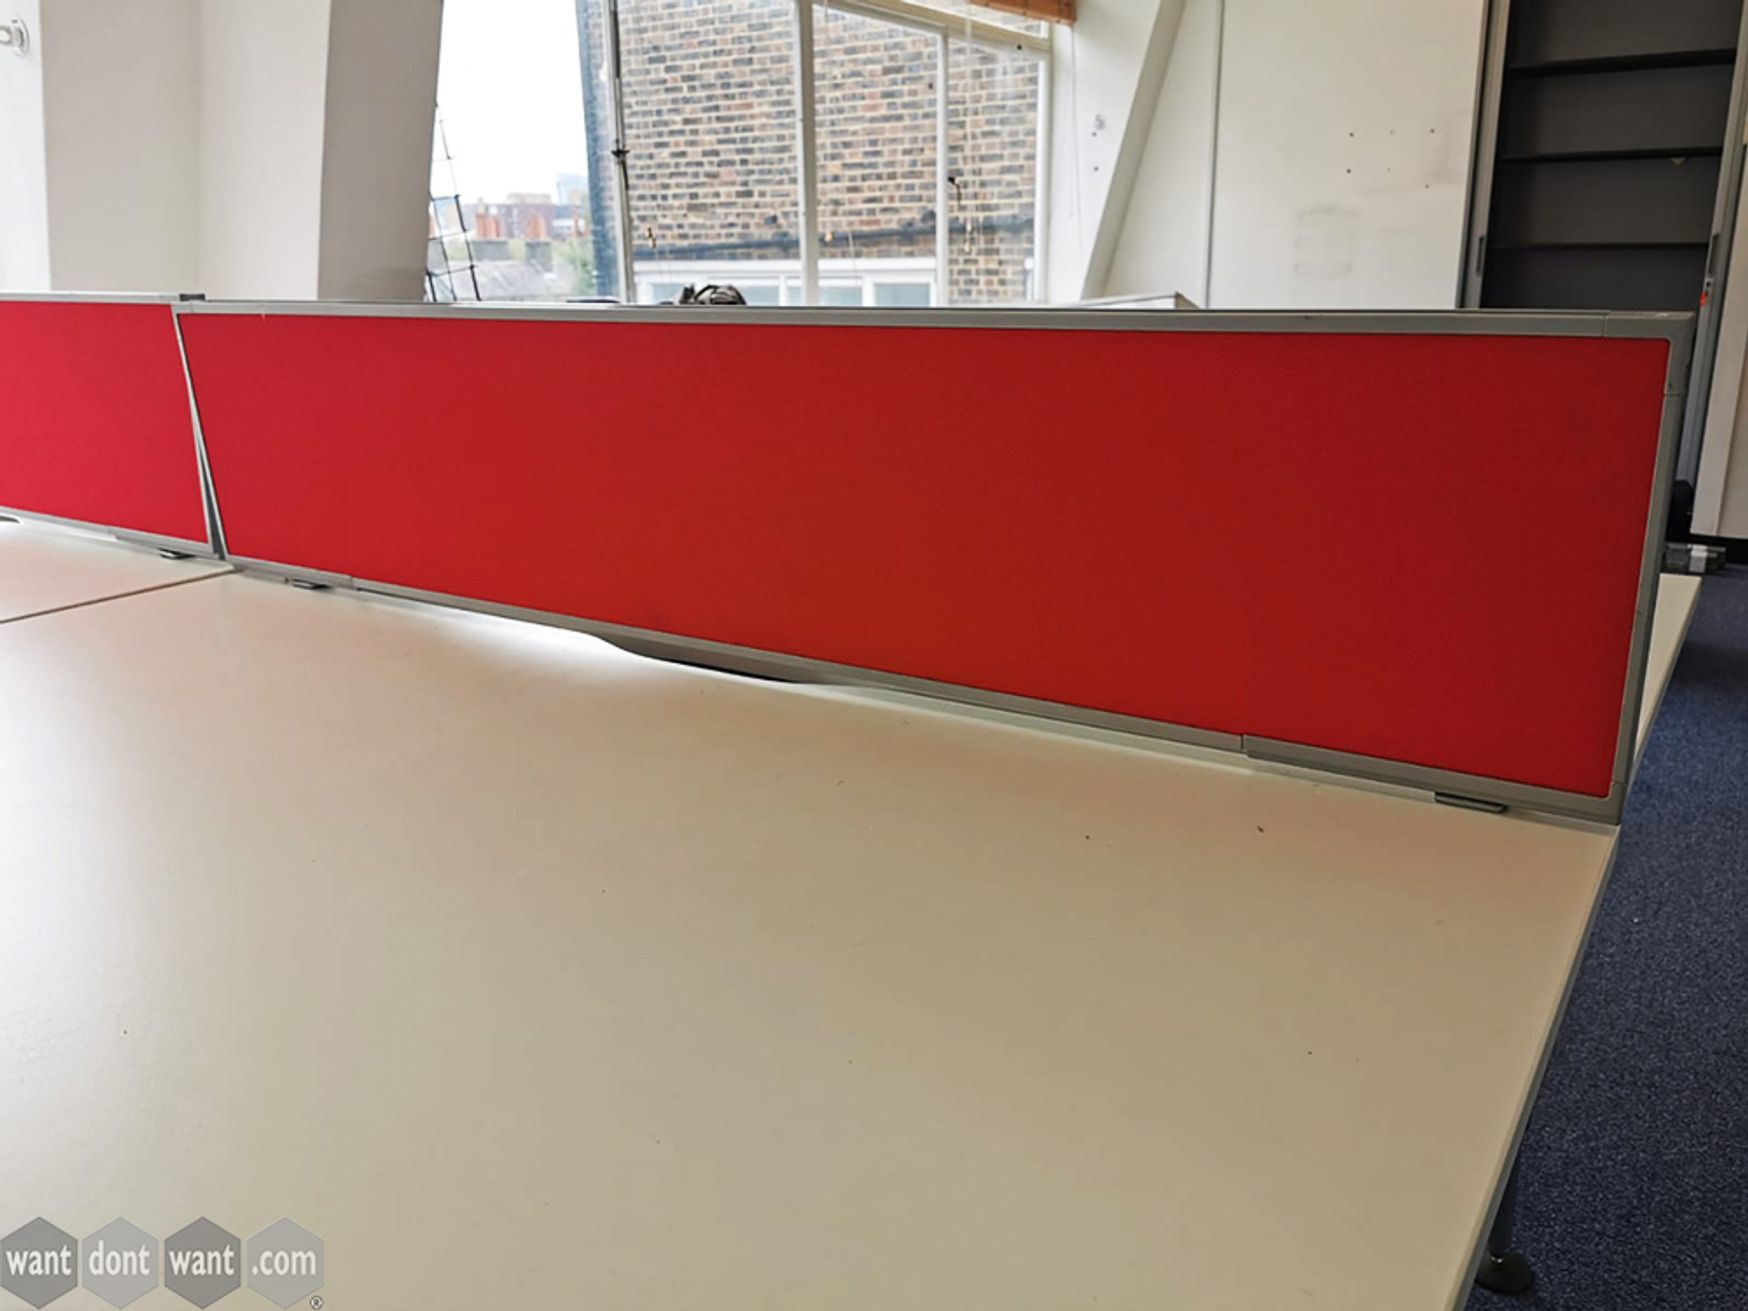 Used 1400mm Fabric Desk Dividing Screens with C Clamps